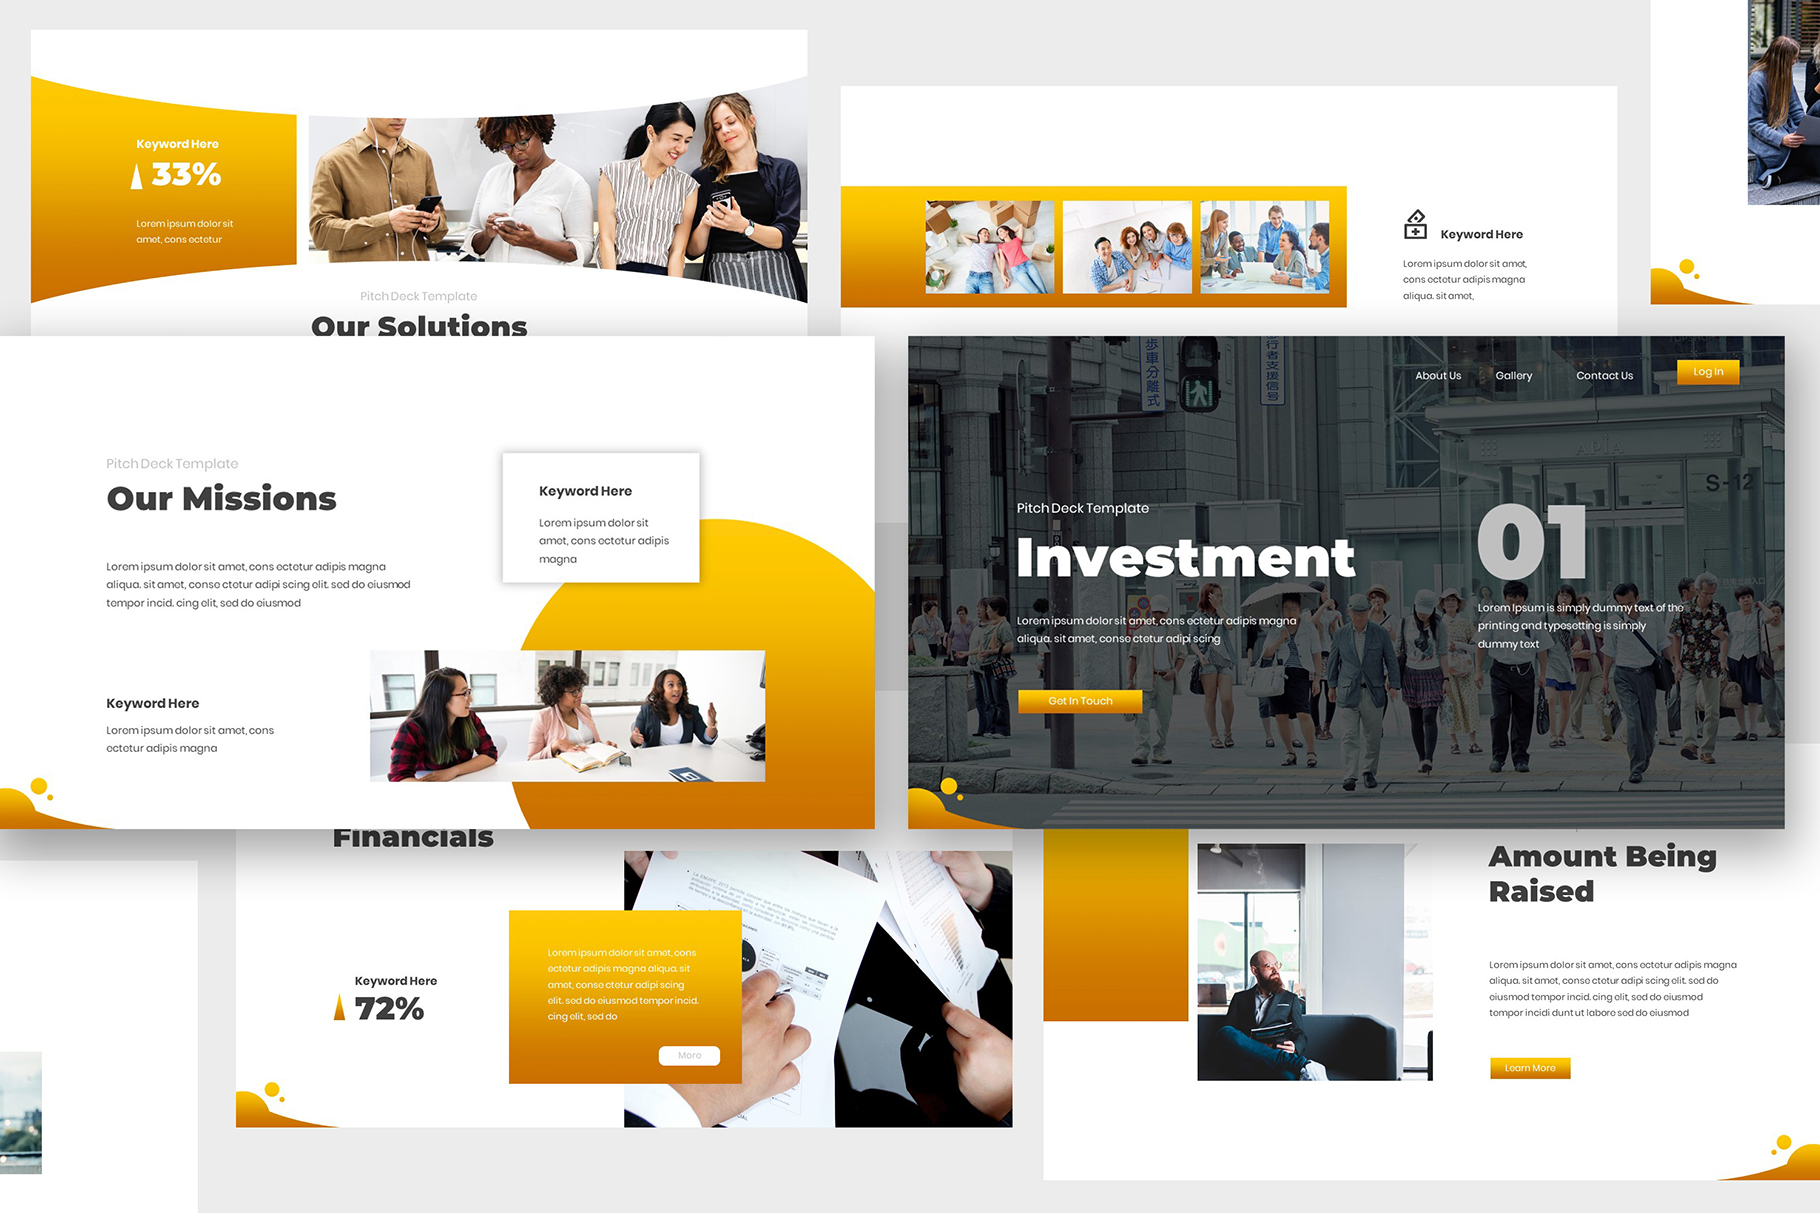 Investment Pitch Deck Google Slides example image 3